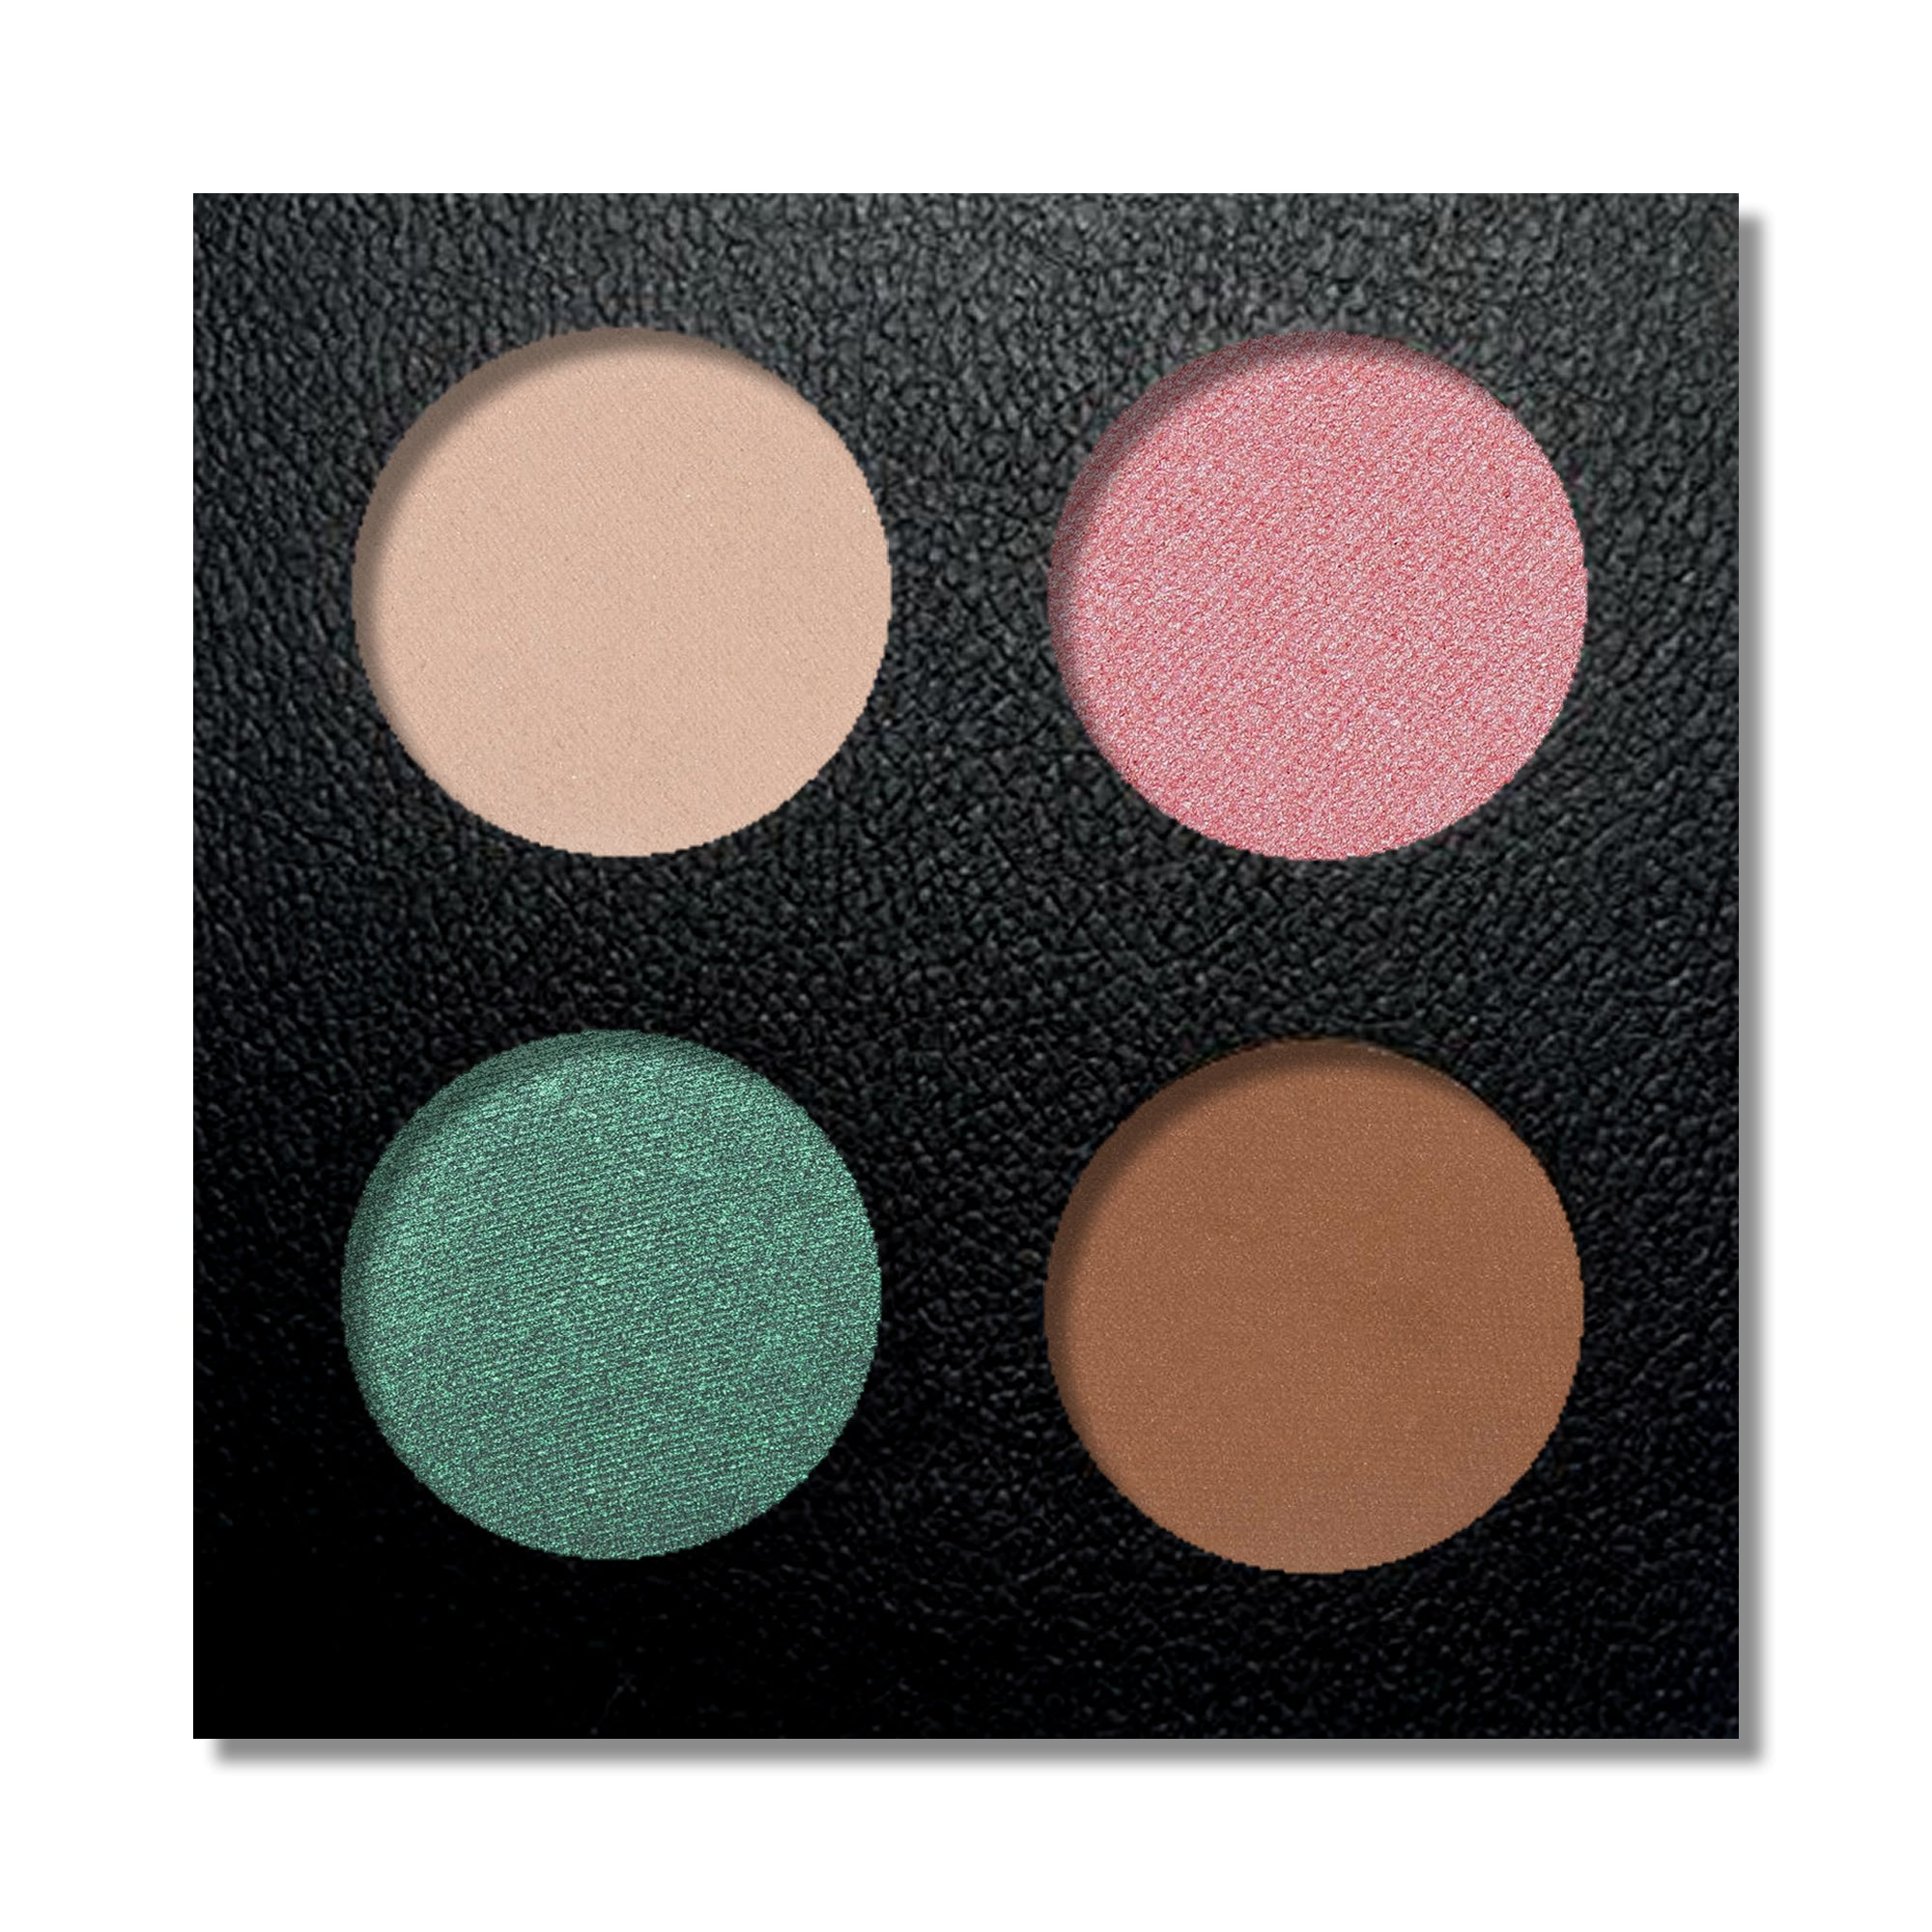 Shop EYE/DESIRE: Luxe Mineral Eyeshadow Palettes - Josephine Cosmetics